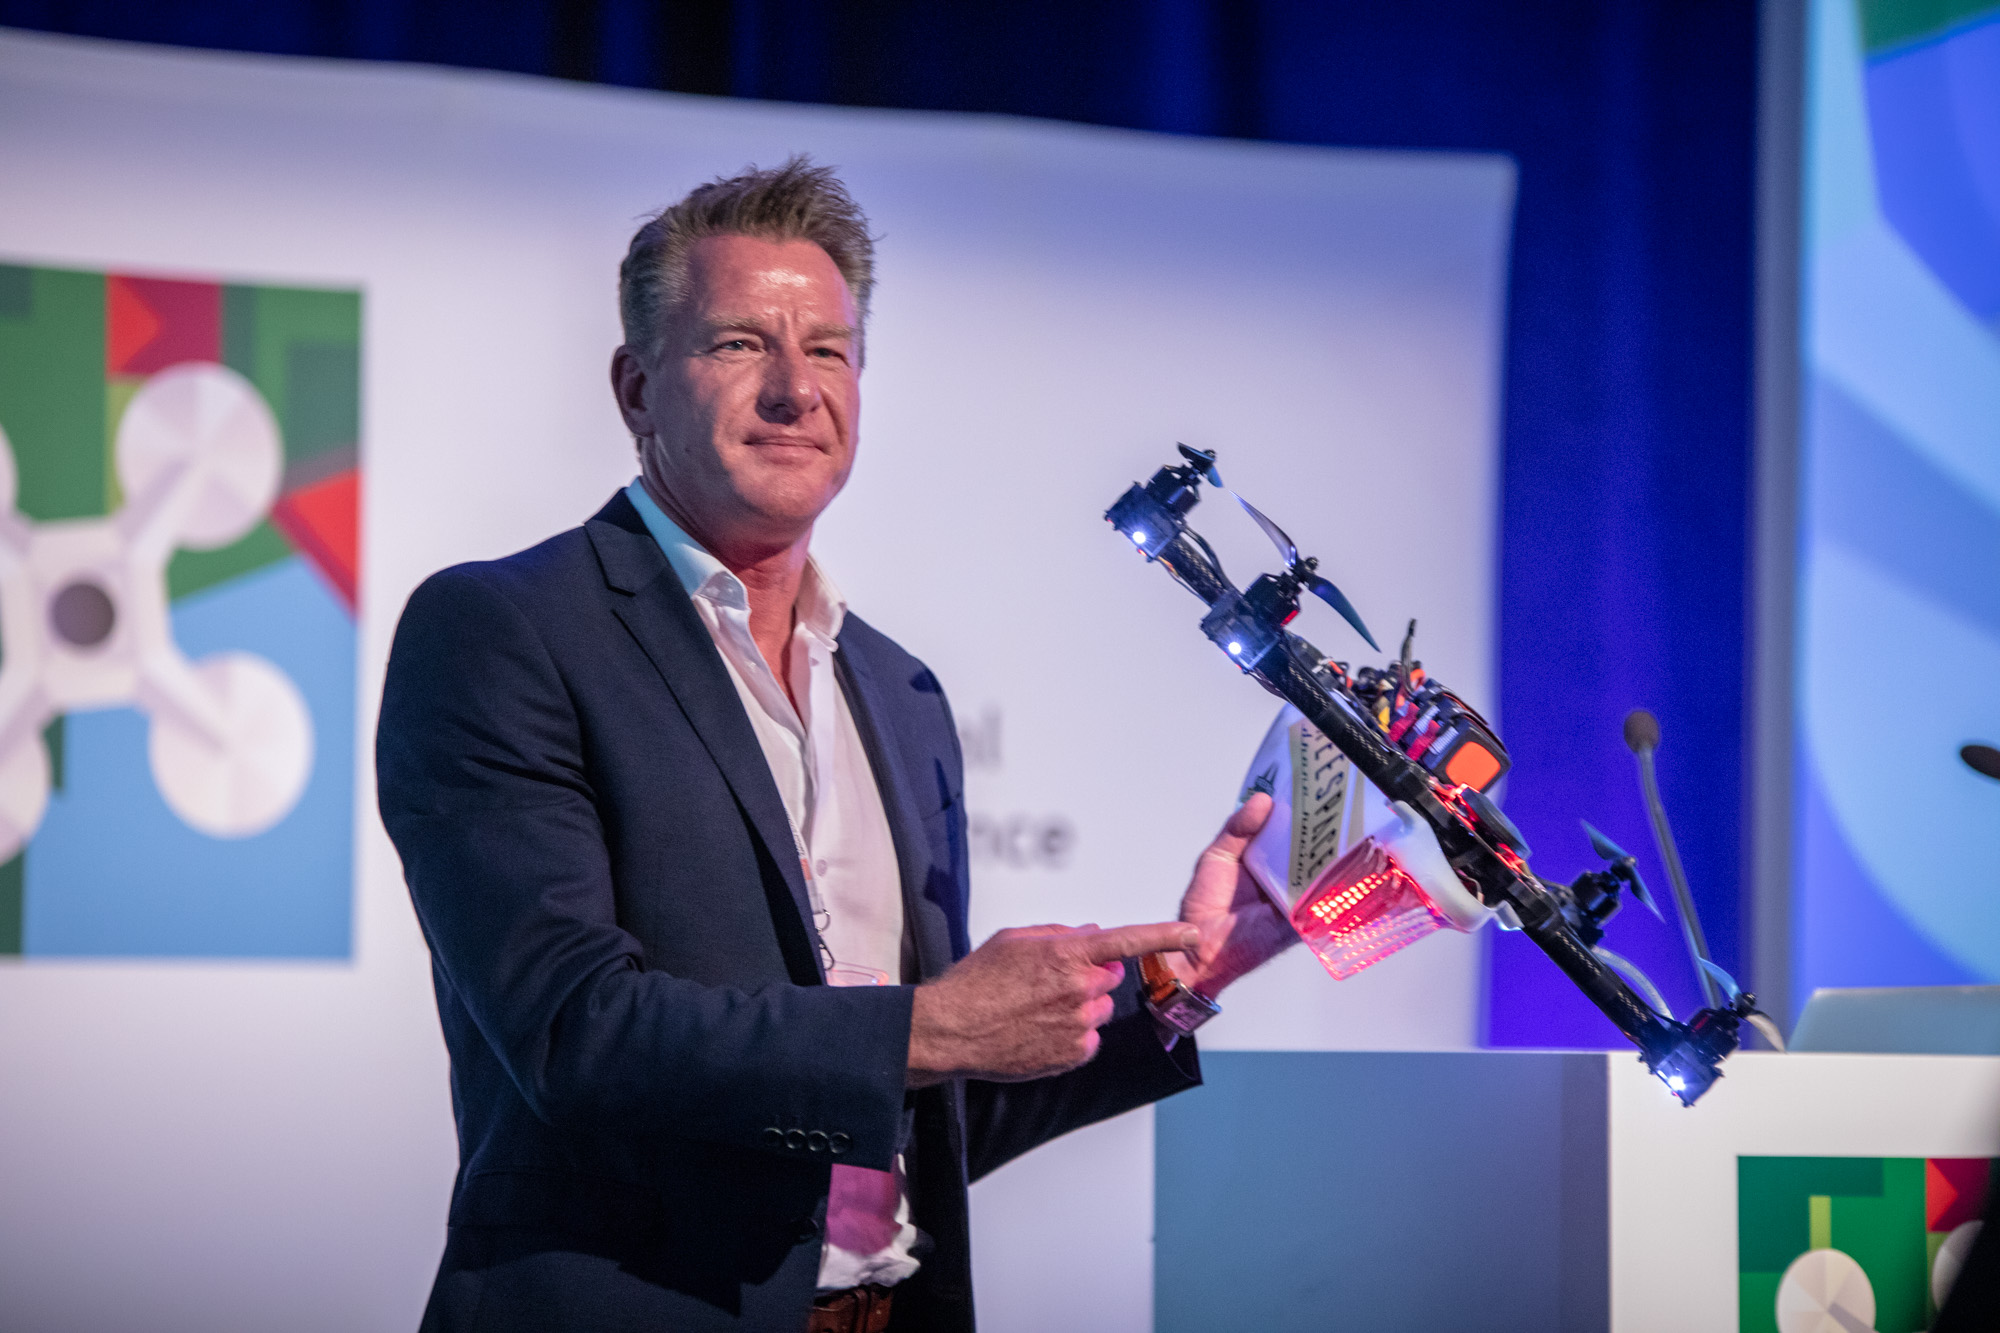 Sports at the FAI International Drones Conference